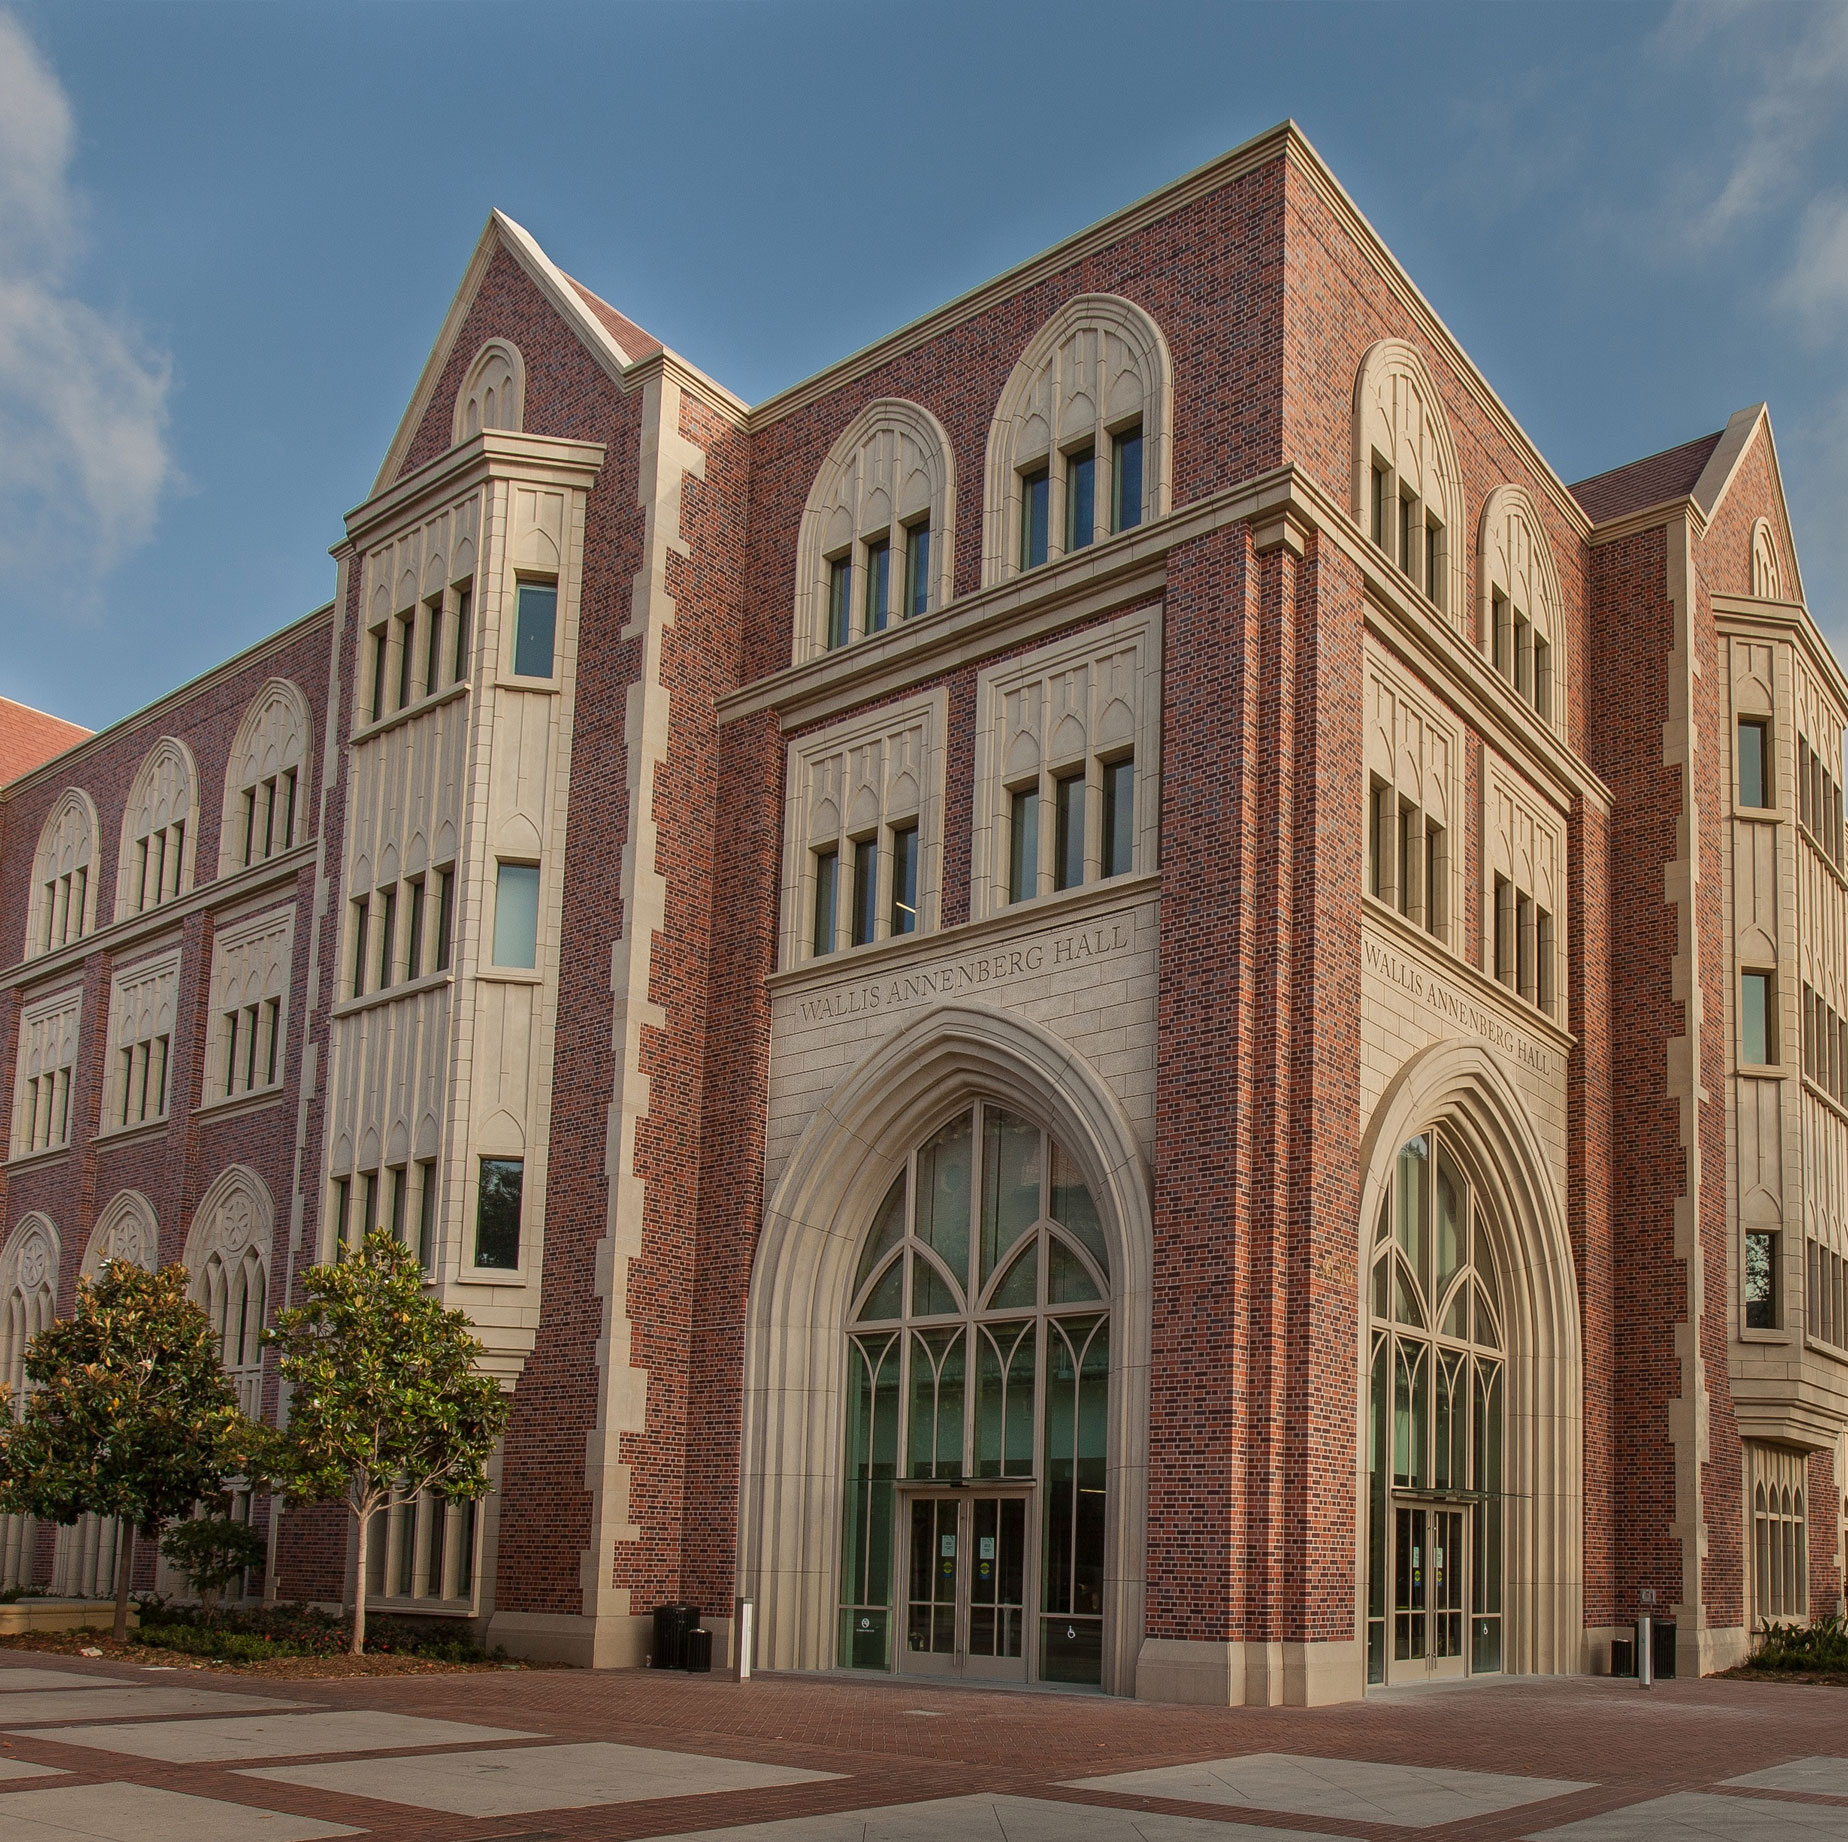 Wallis Annenberg Hall at USC